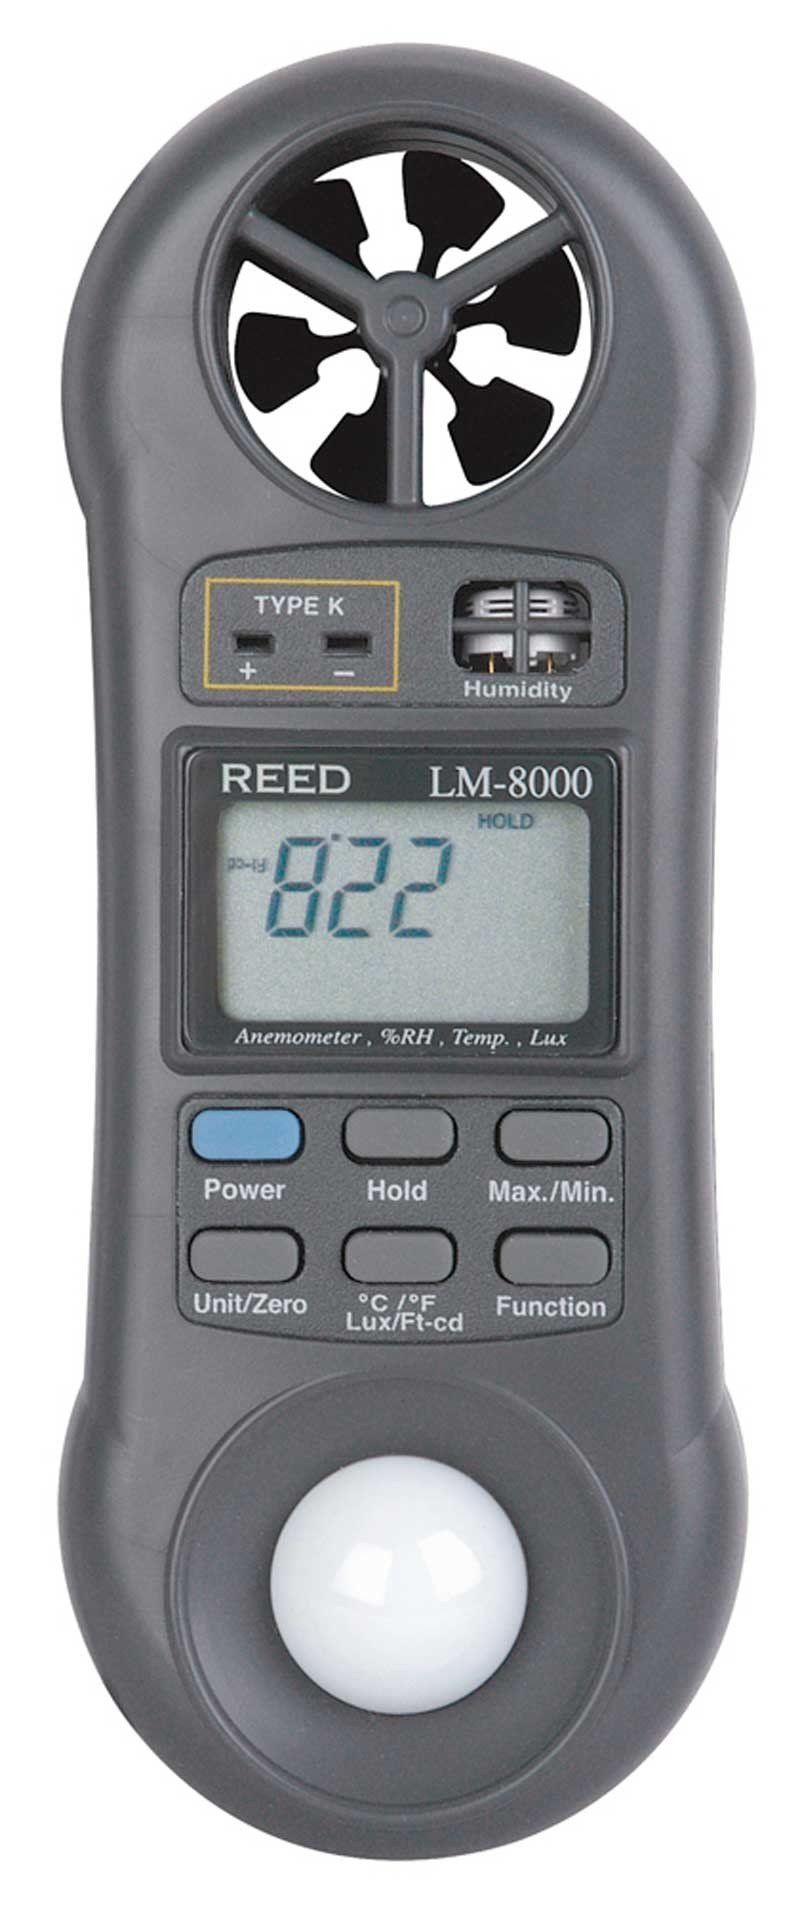 REED LM-8000 Multi-Function Environmental Meter-